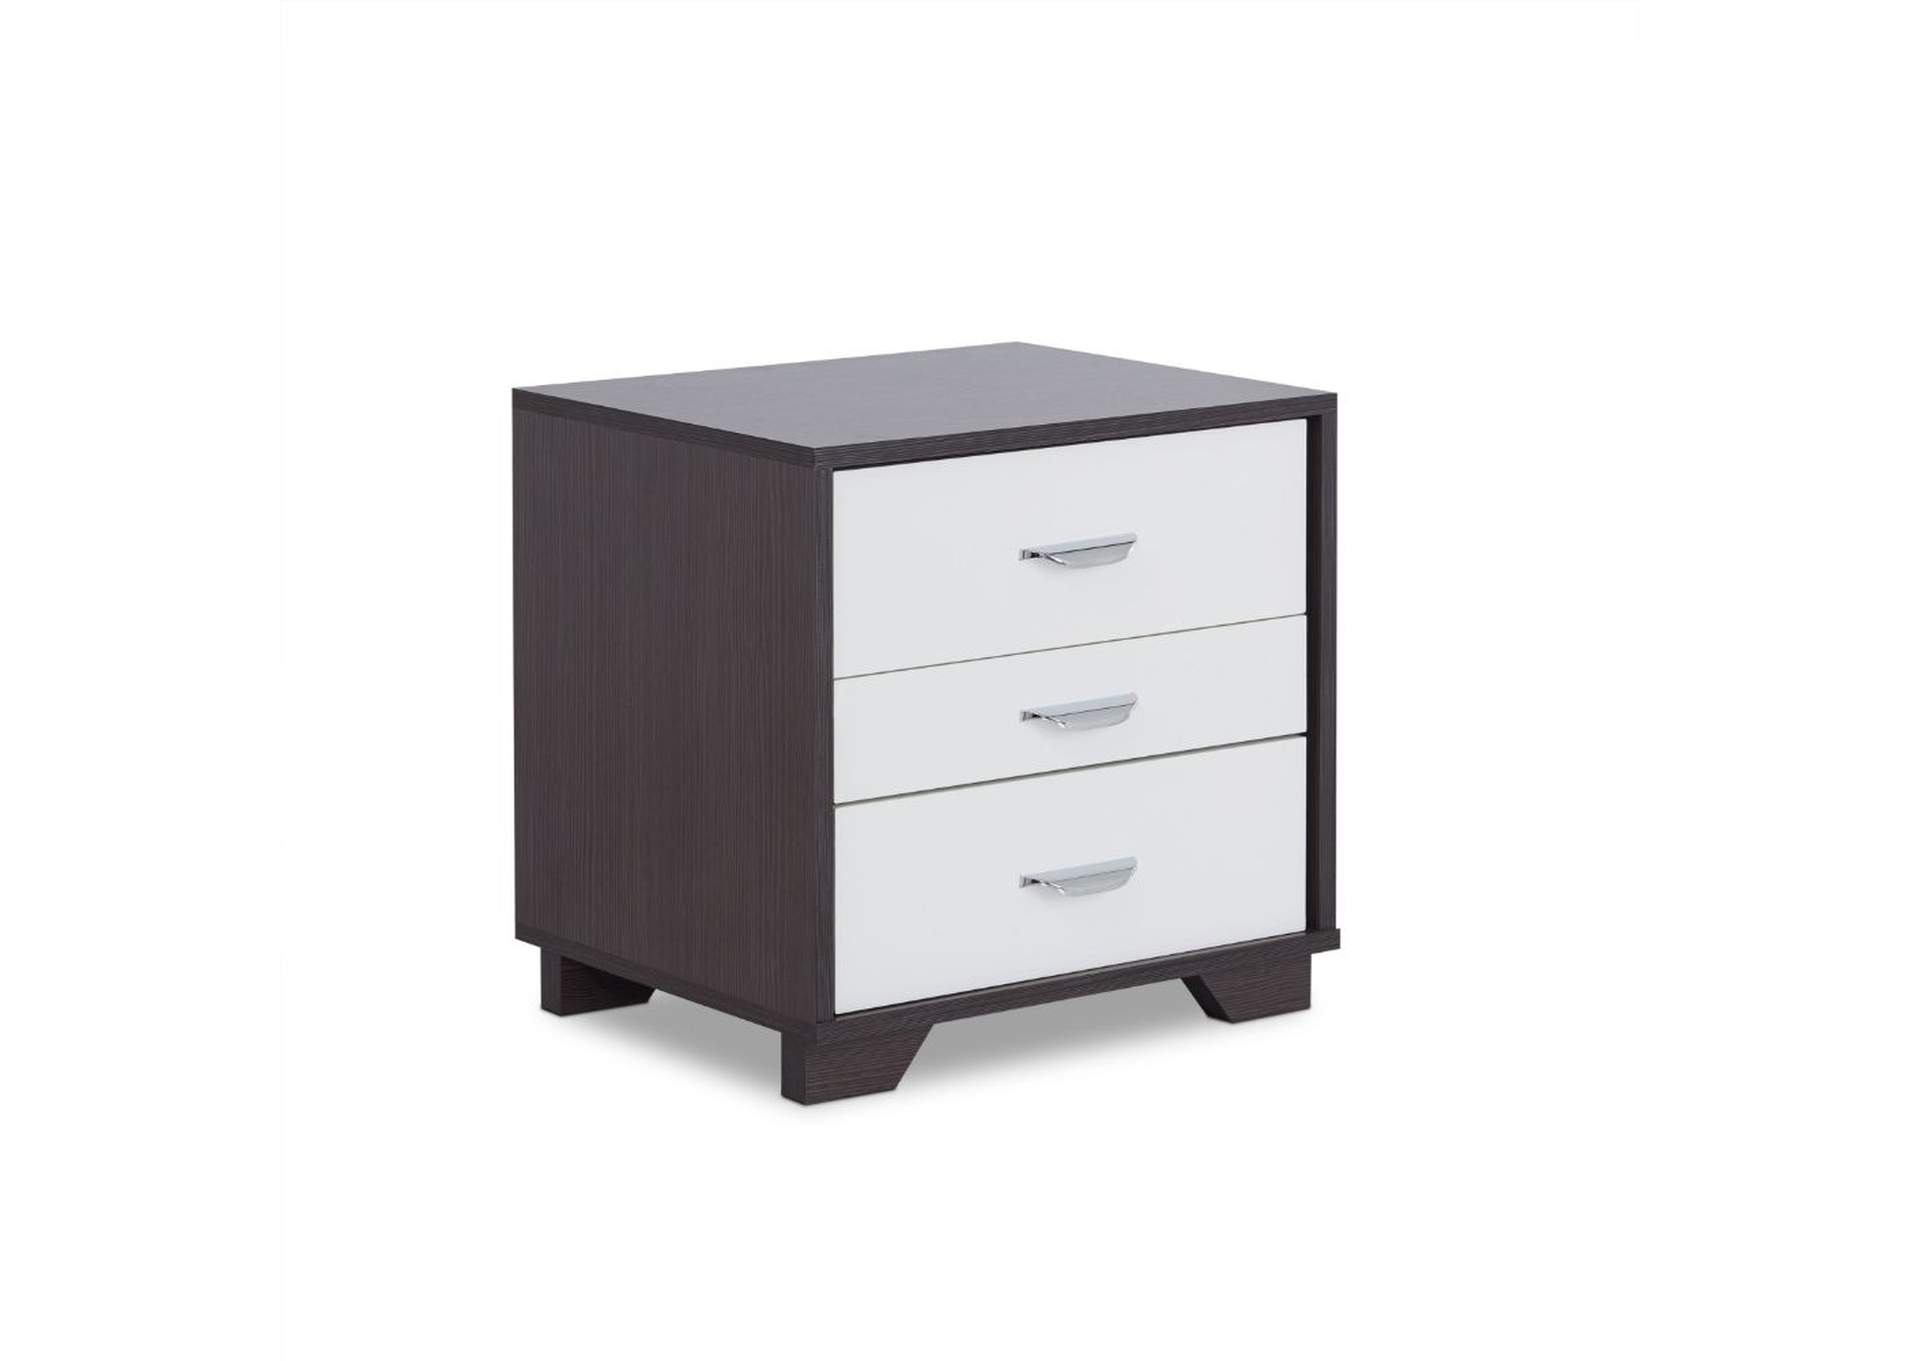 Eloy White & Black Accent Table,Acme